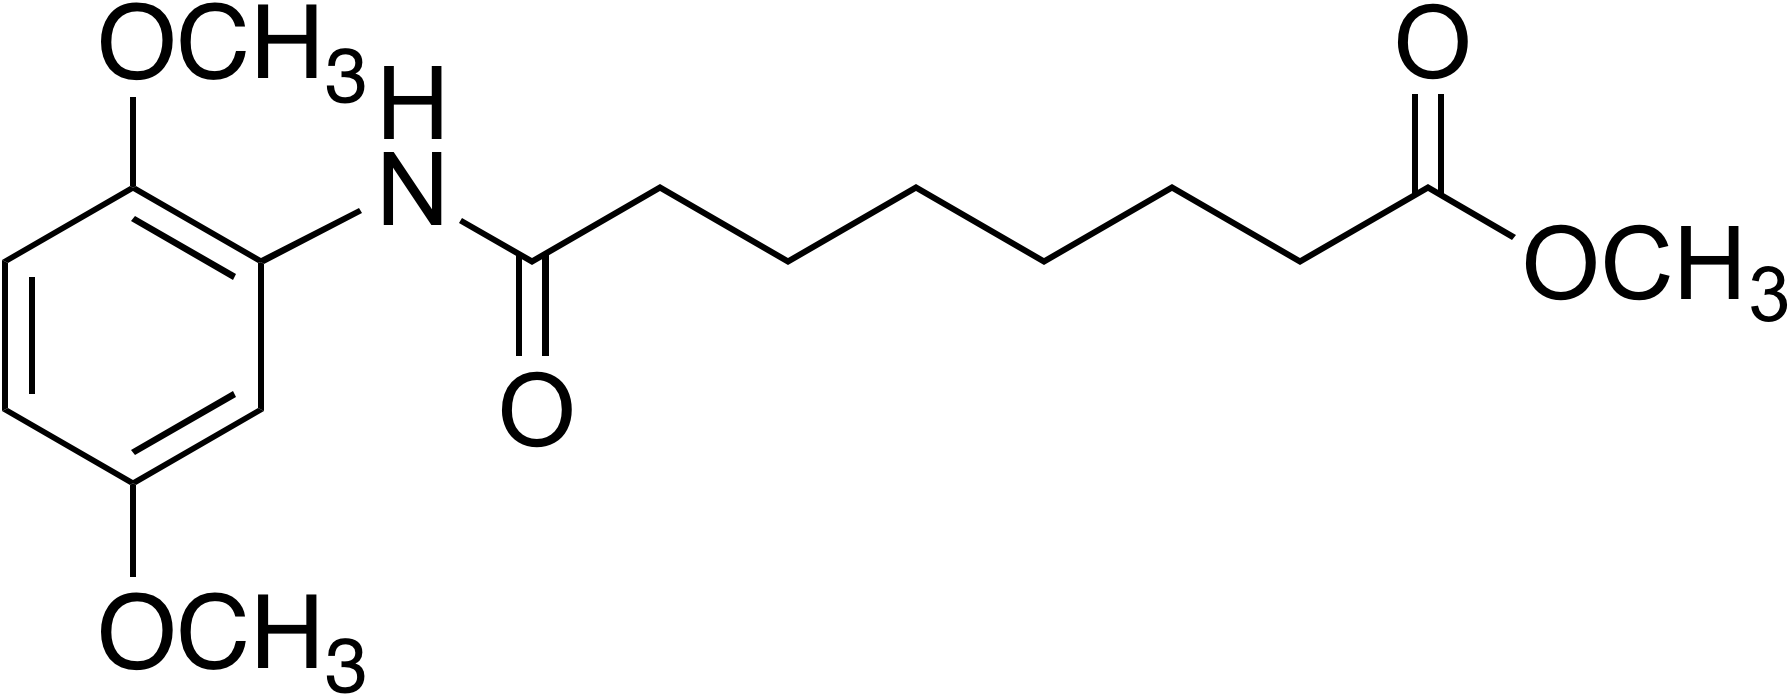 Methyl 8-(2,5-dimethoxyphenylamino)-8-oxooctanoate